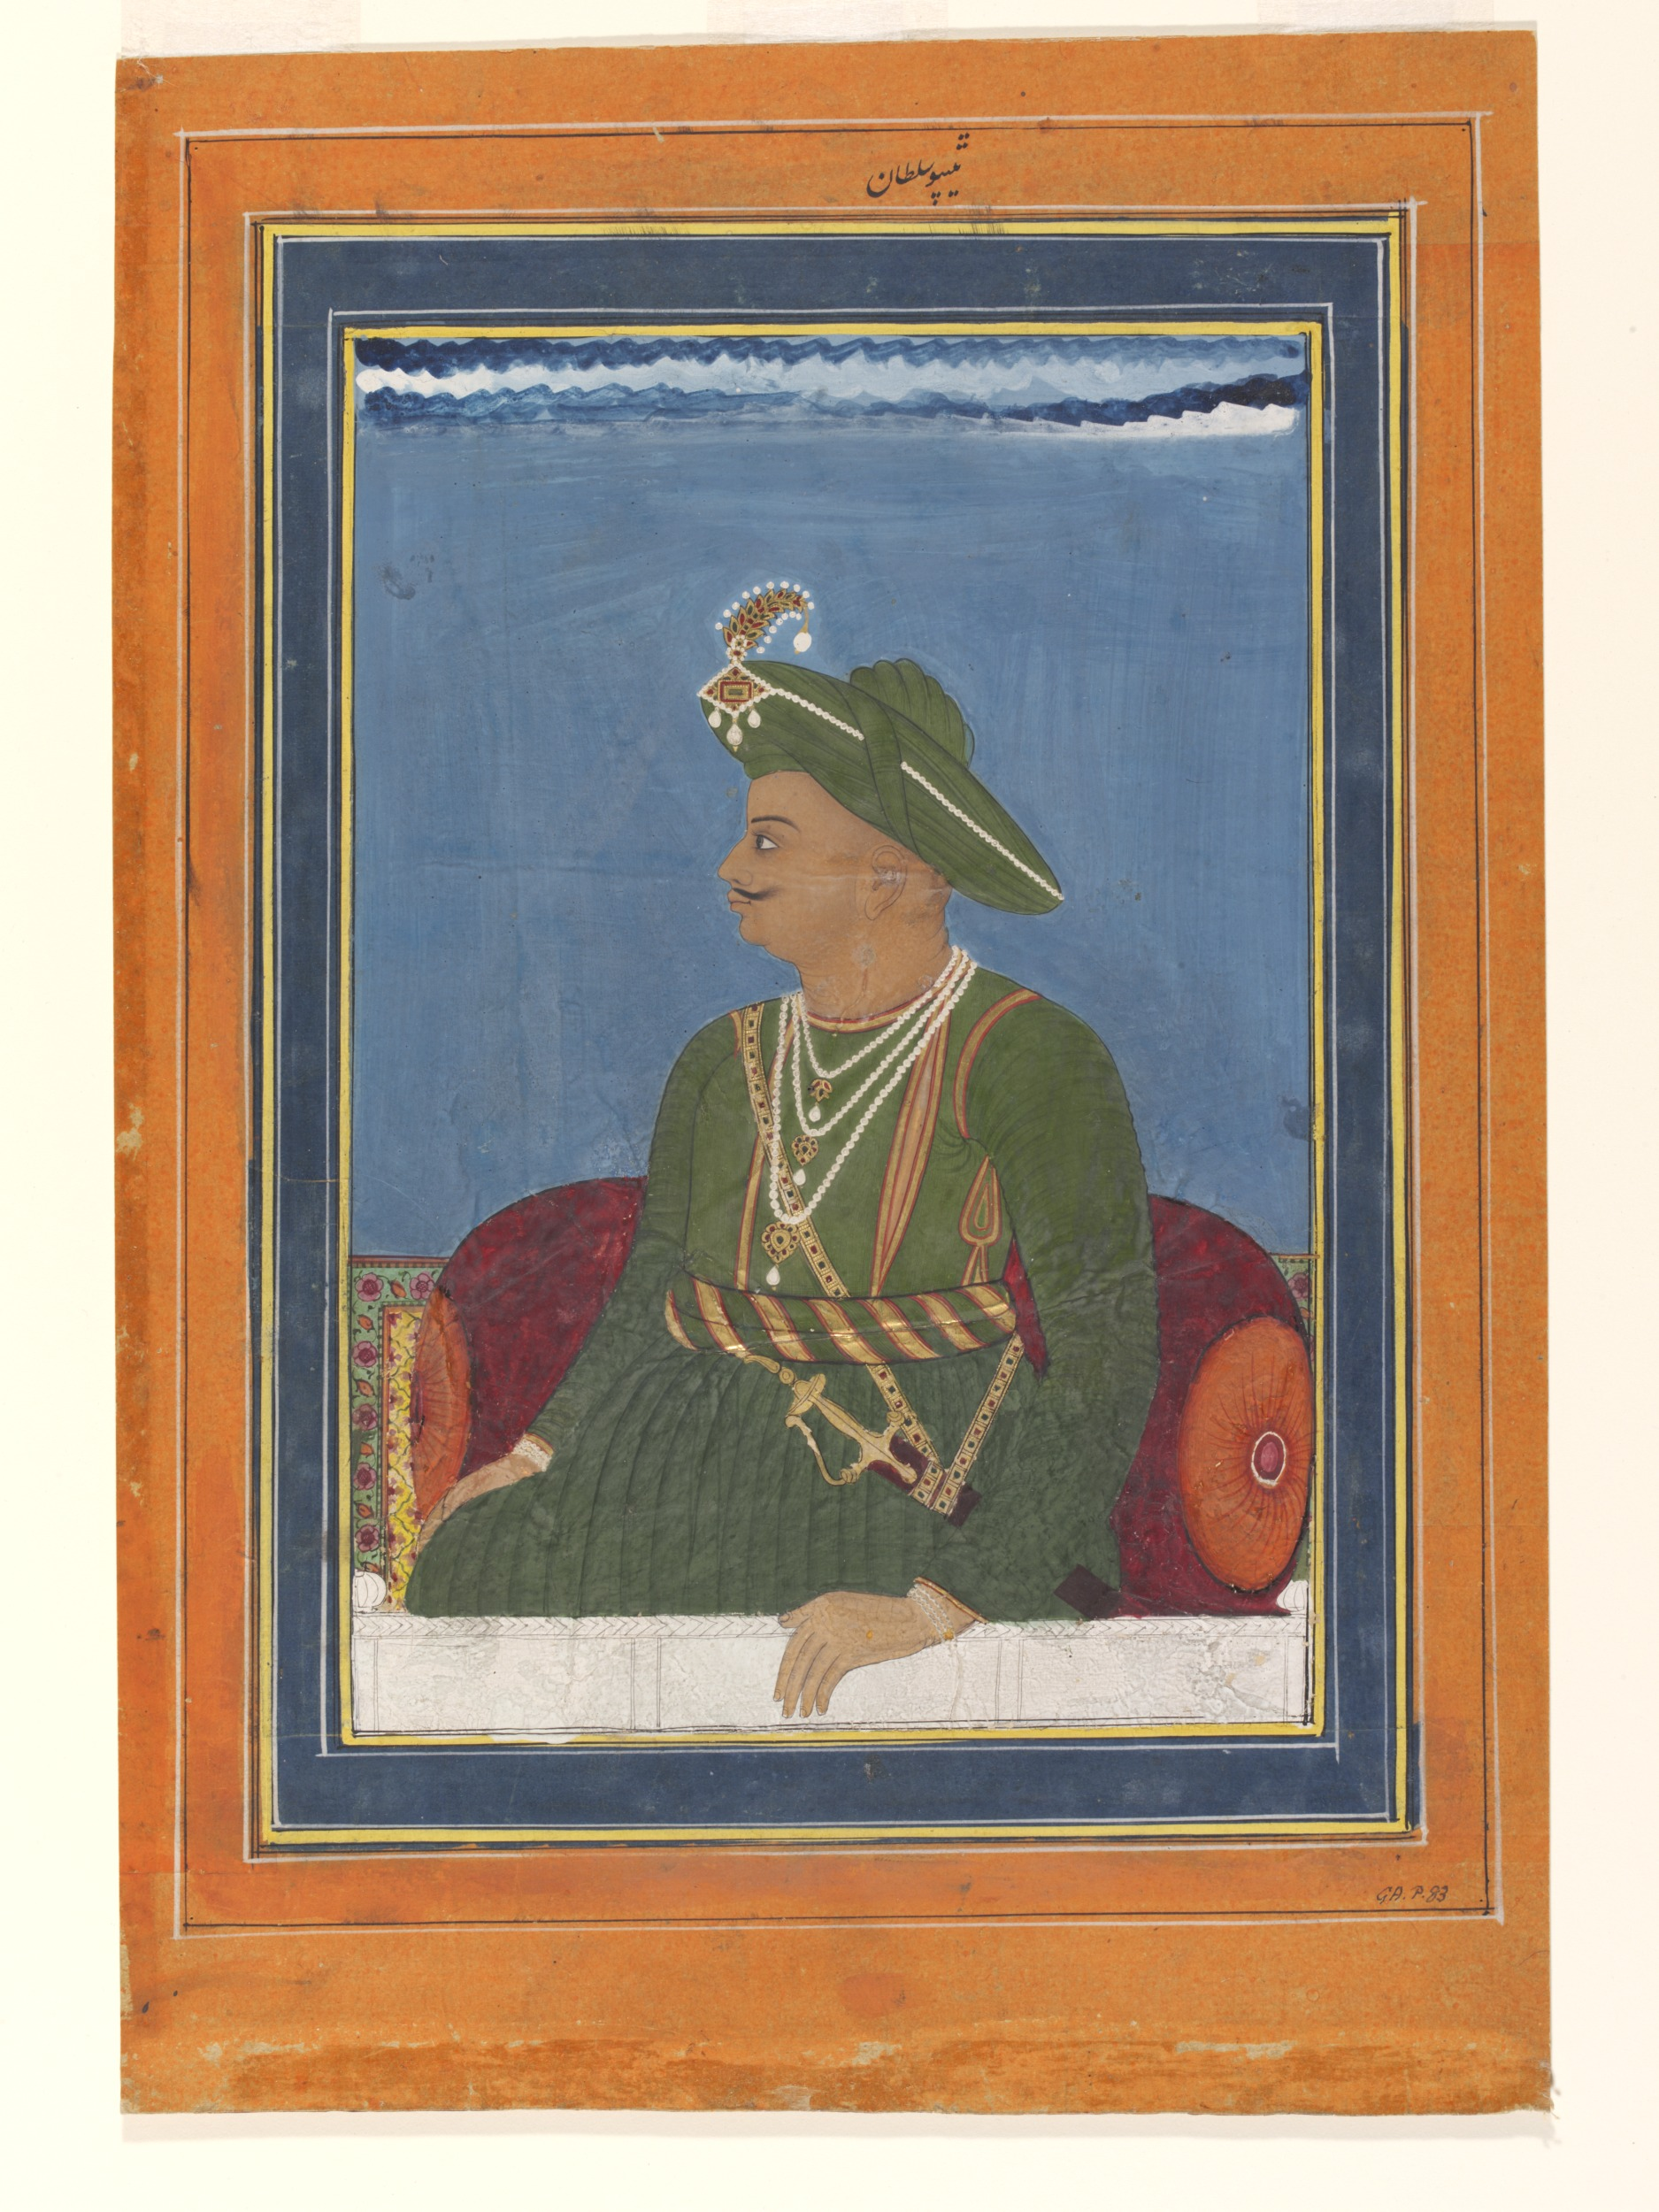 Tipu Sultan: A tiger that triumphed in life and death